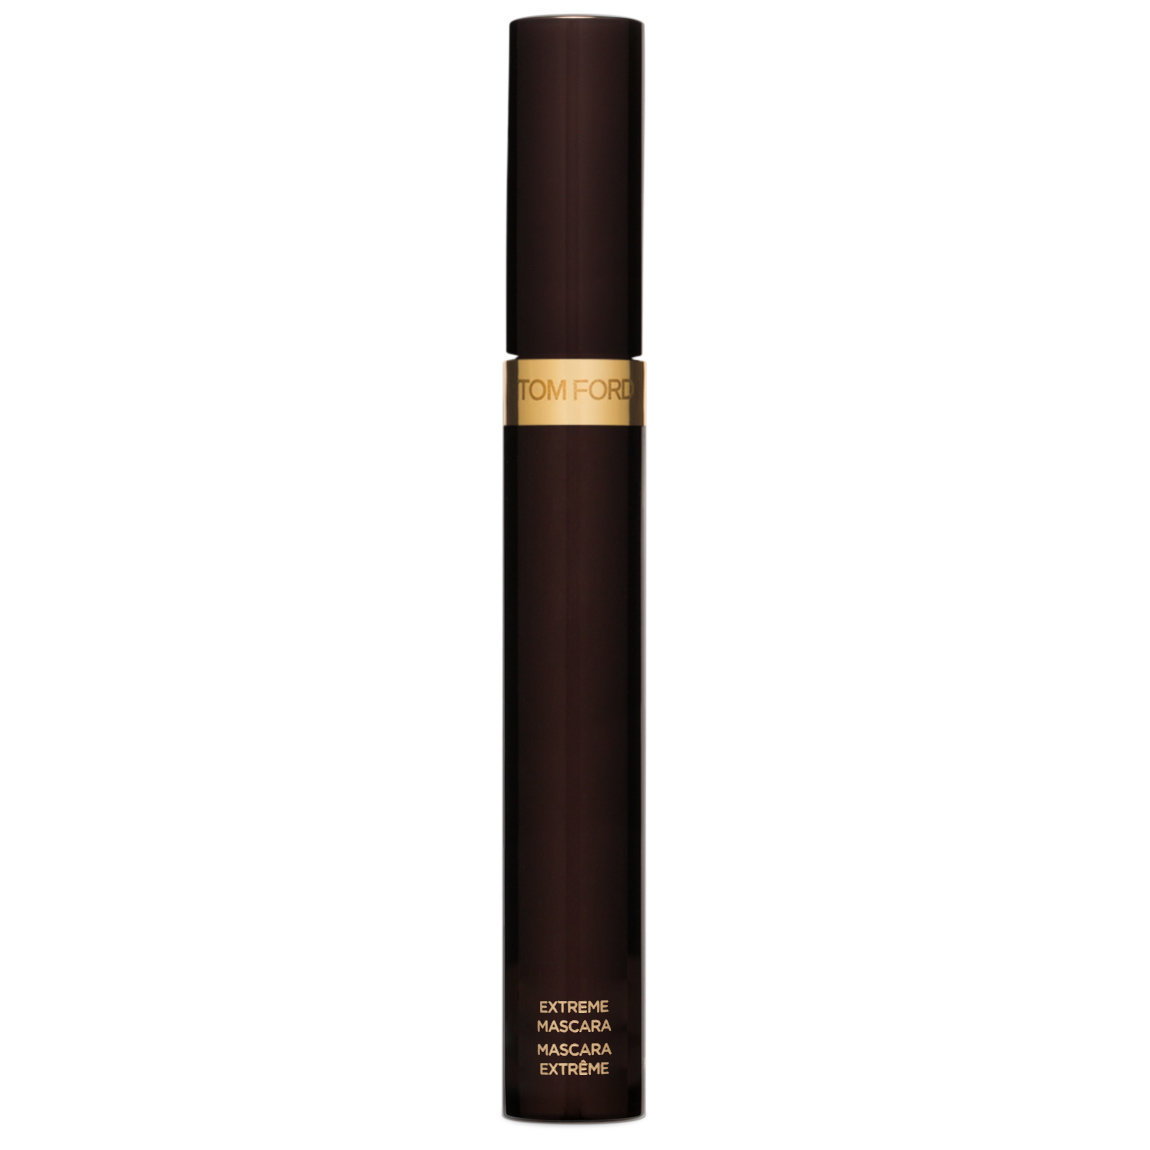 TOM FORD Extreme Mascara product swatch.